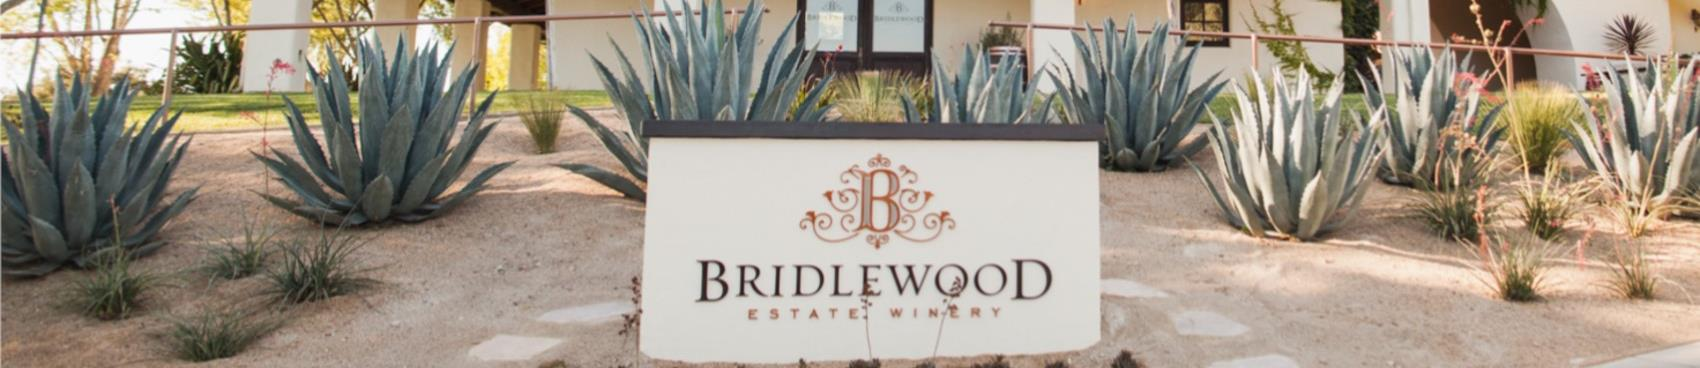 A image of Bridlewood Estate Winery